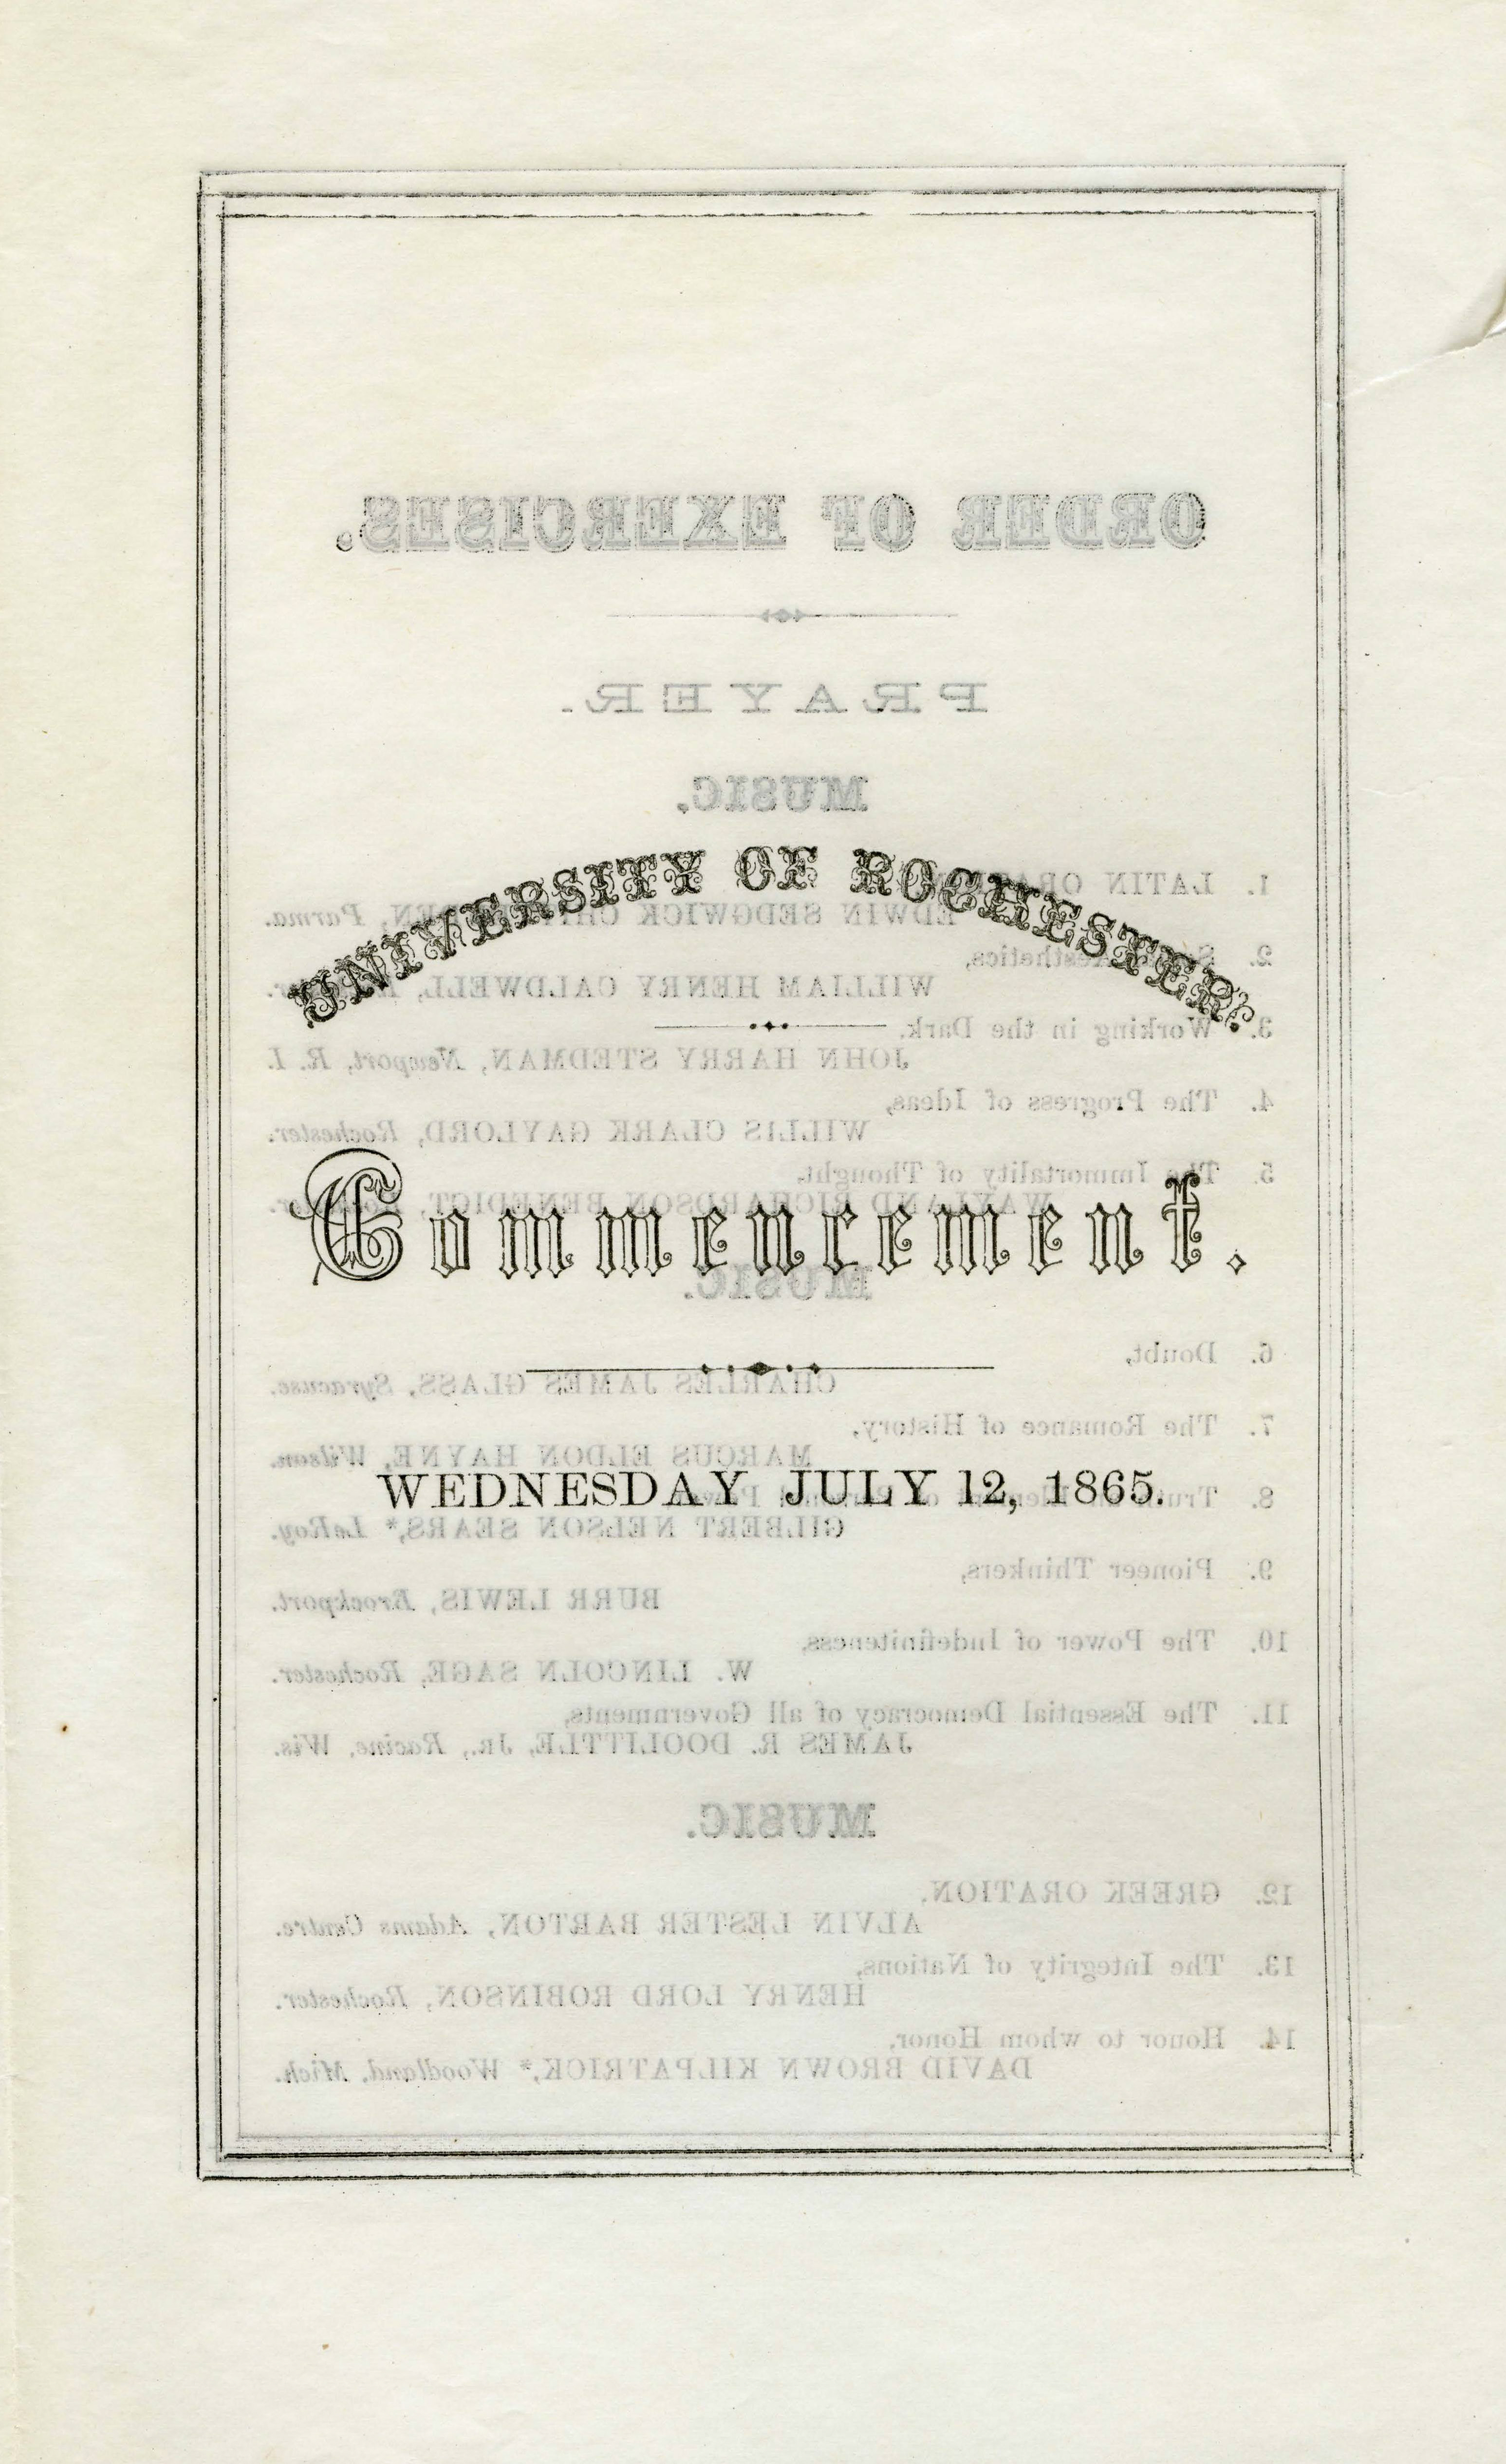 Commencement program (July 12, 1865)